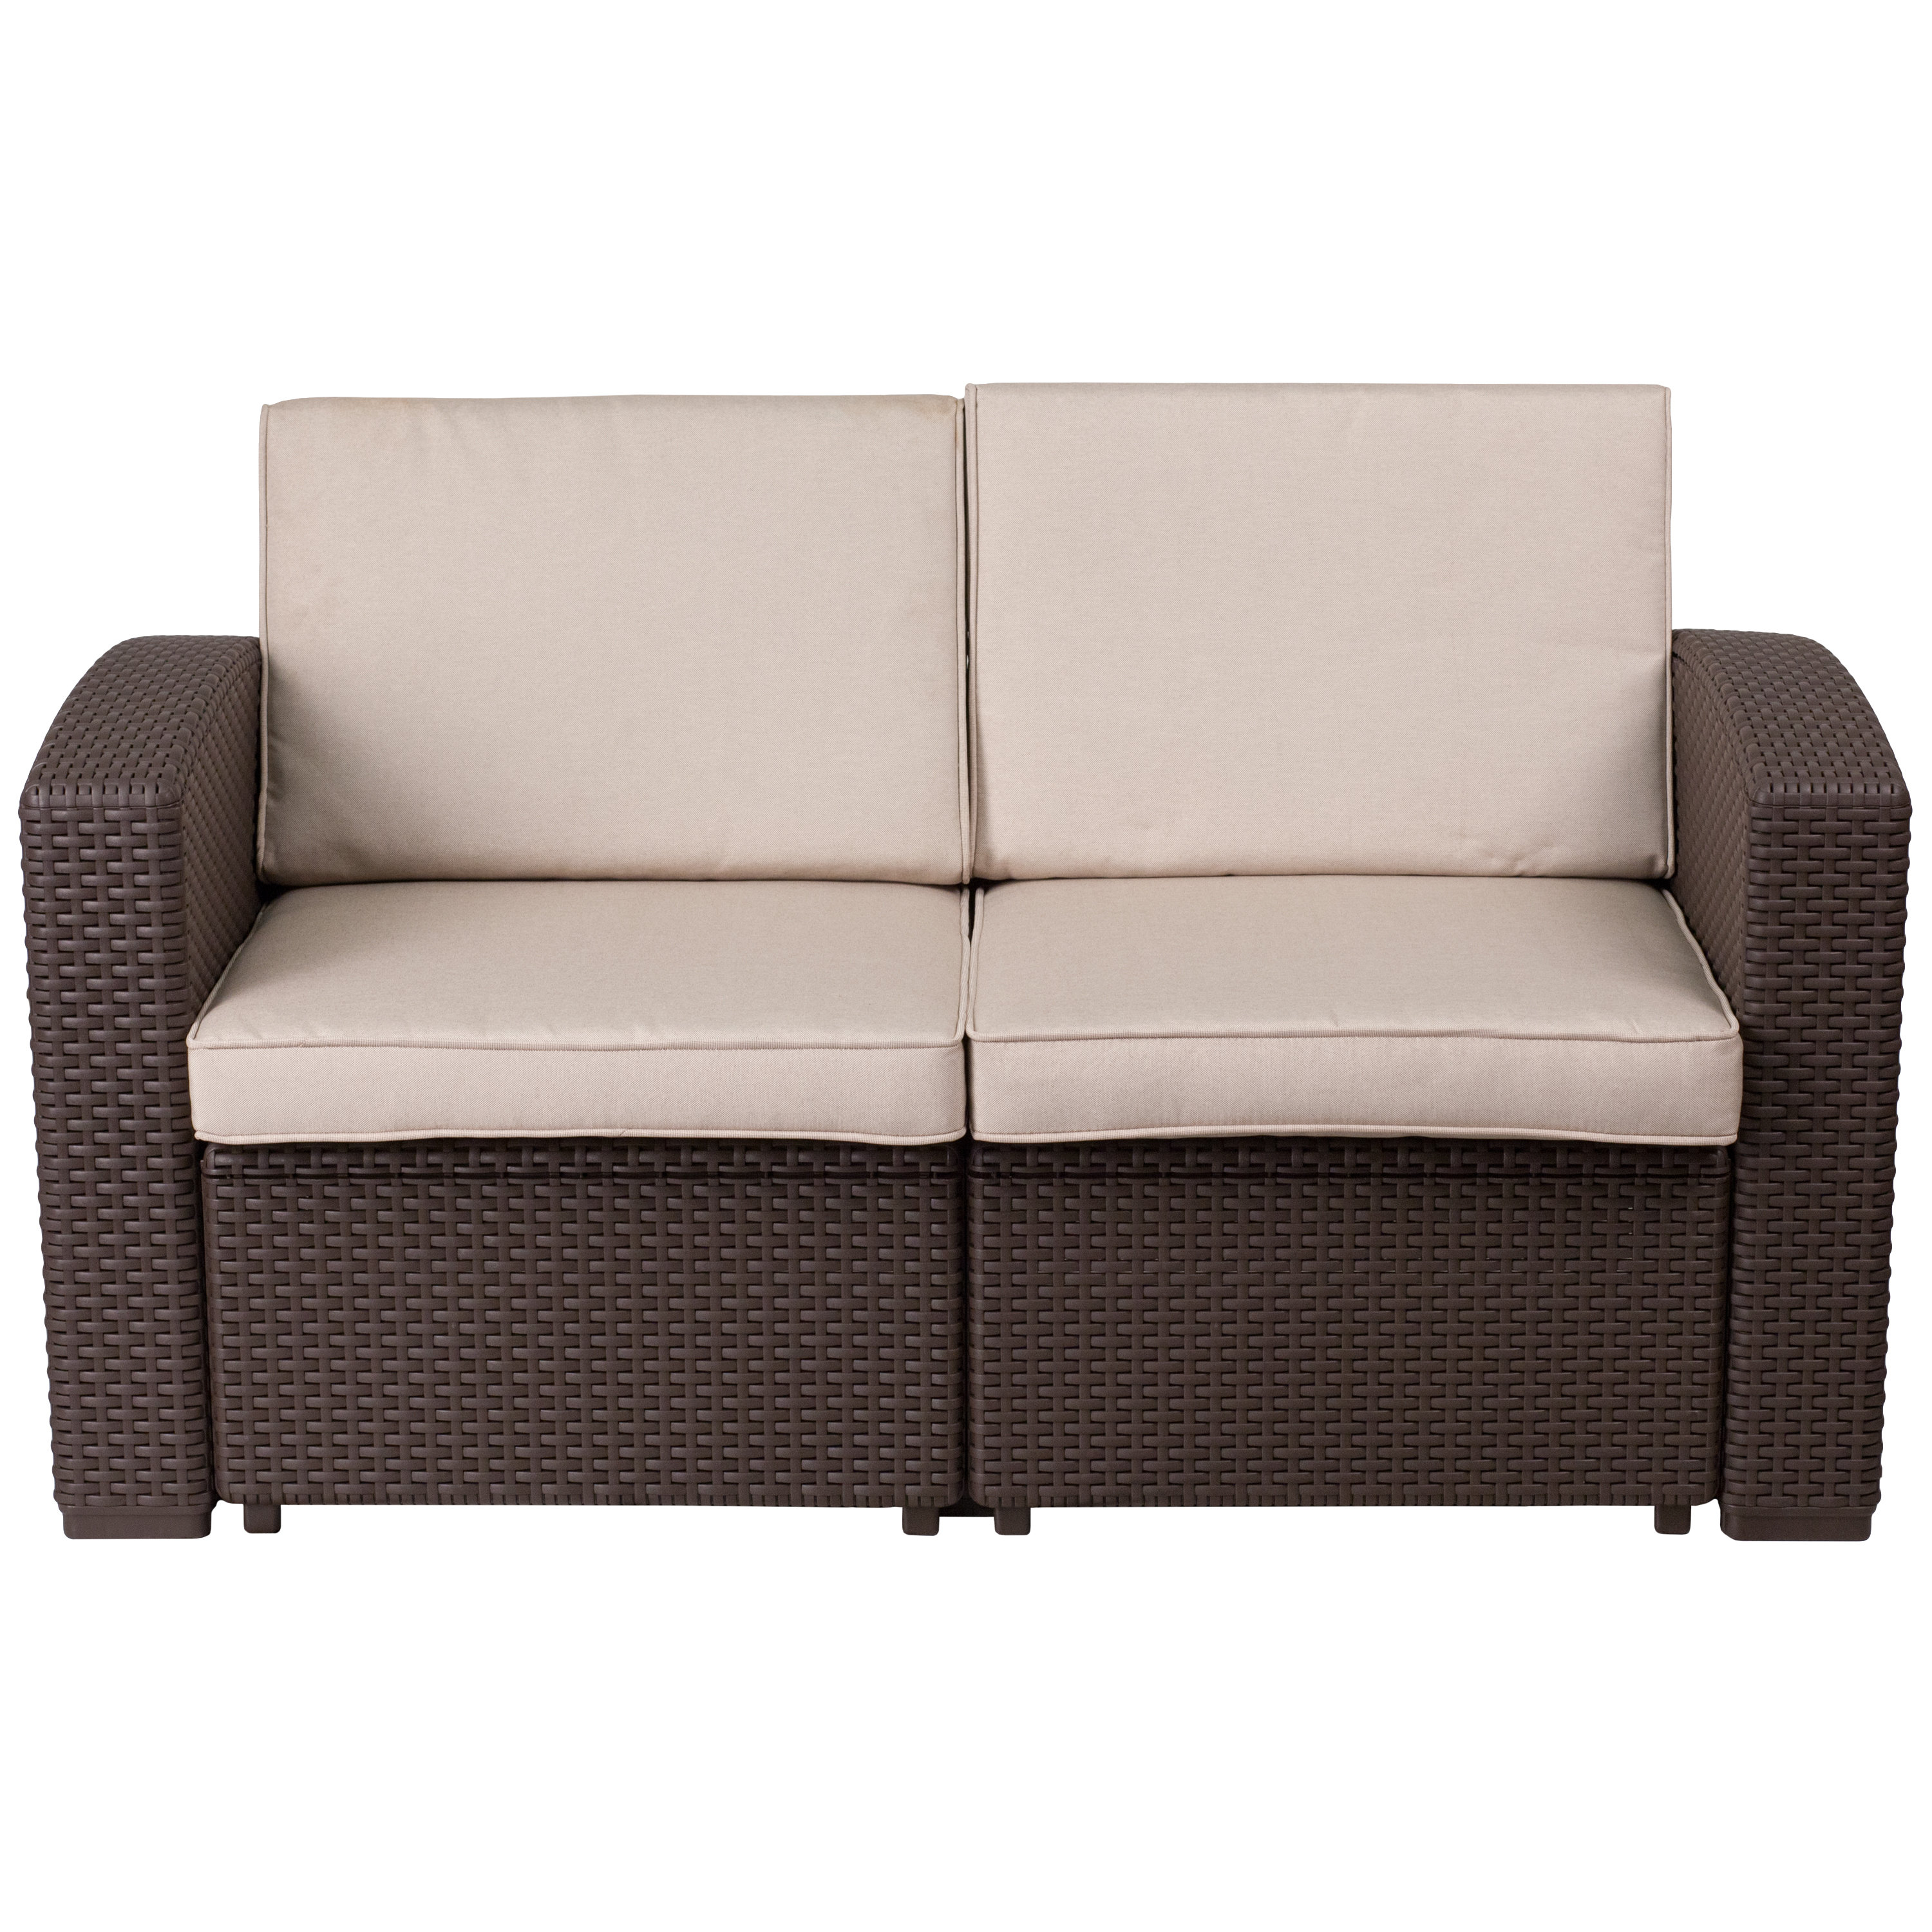 Calila Teak Loveseats With Cushion With Regard To Recent Clifford Loveseat With Cushion (View 6 of 20)